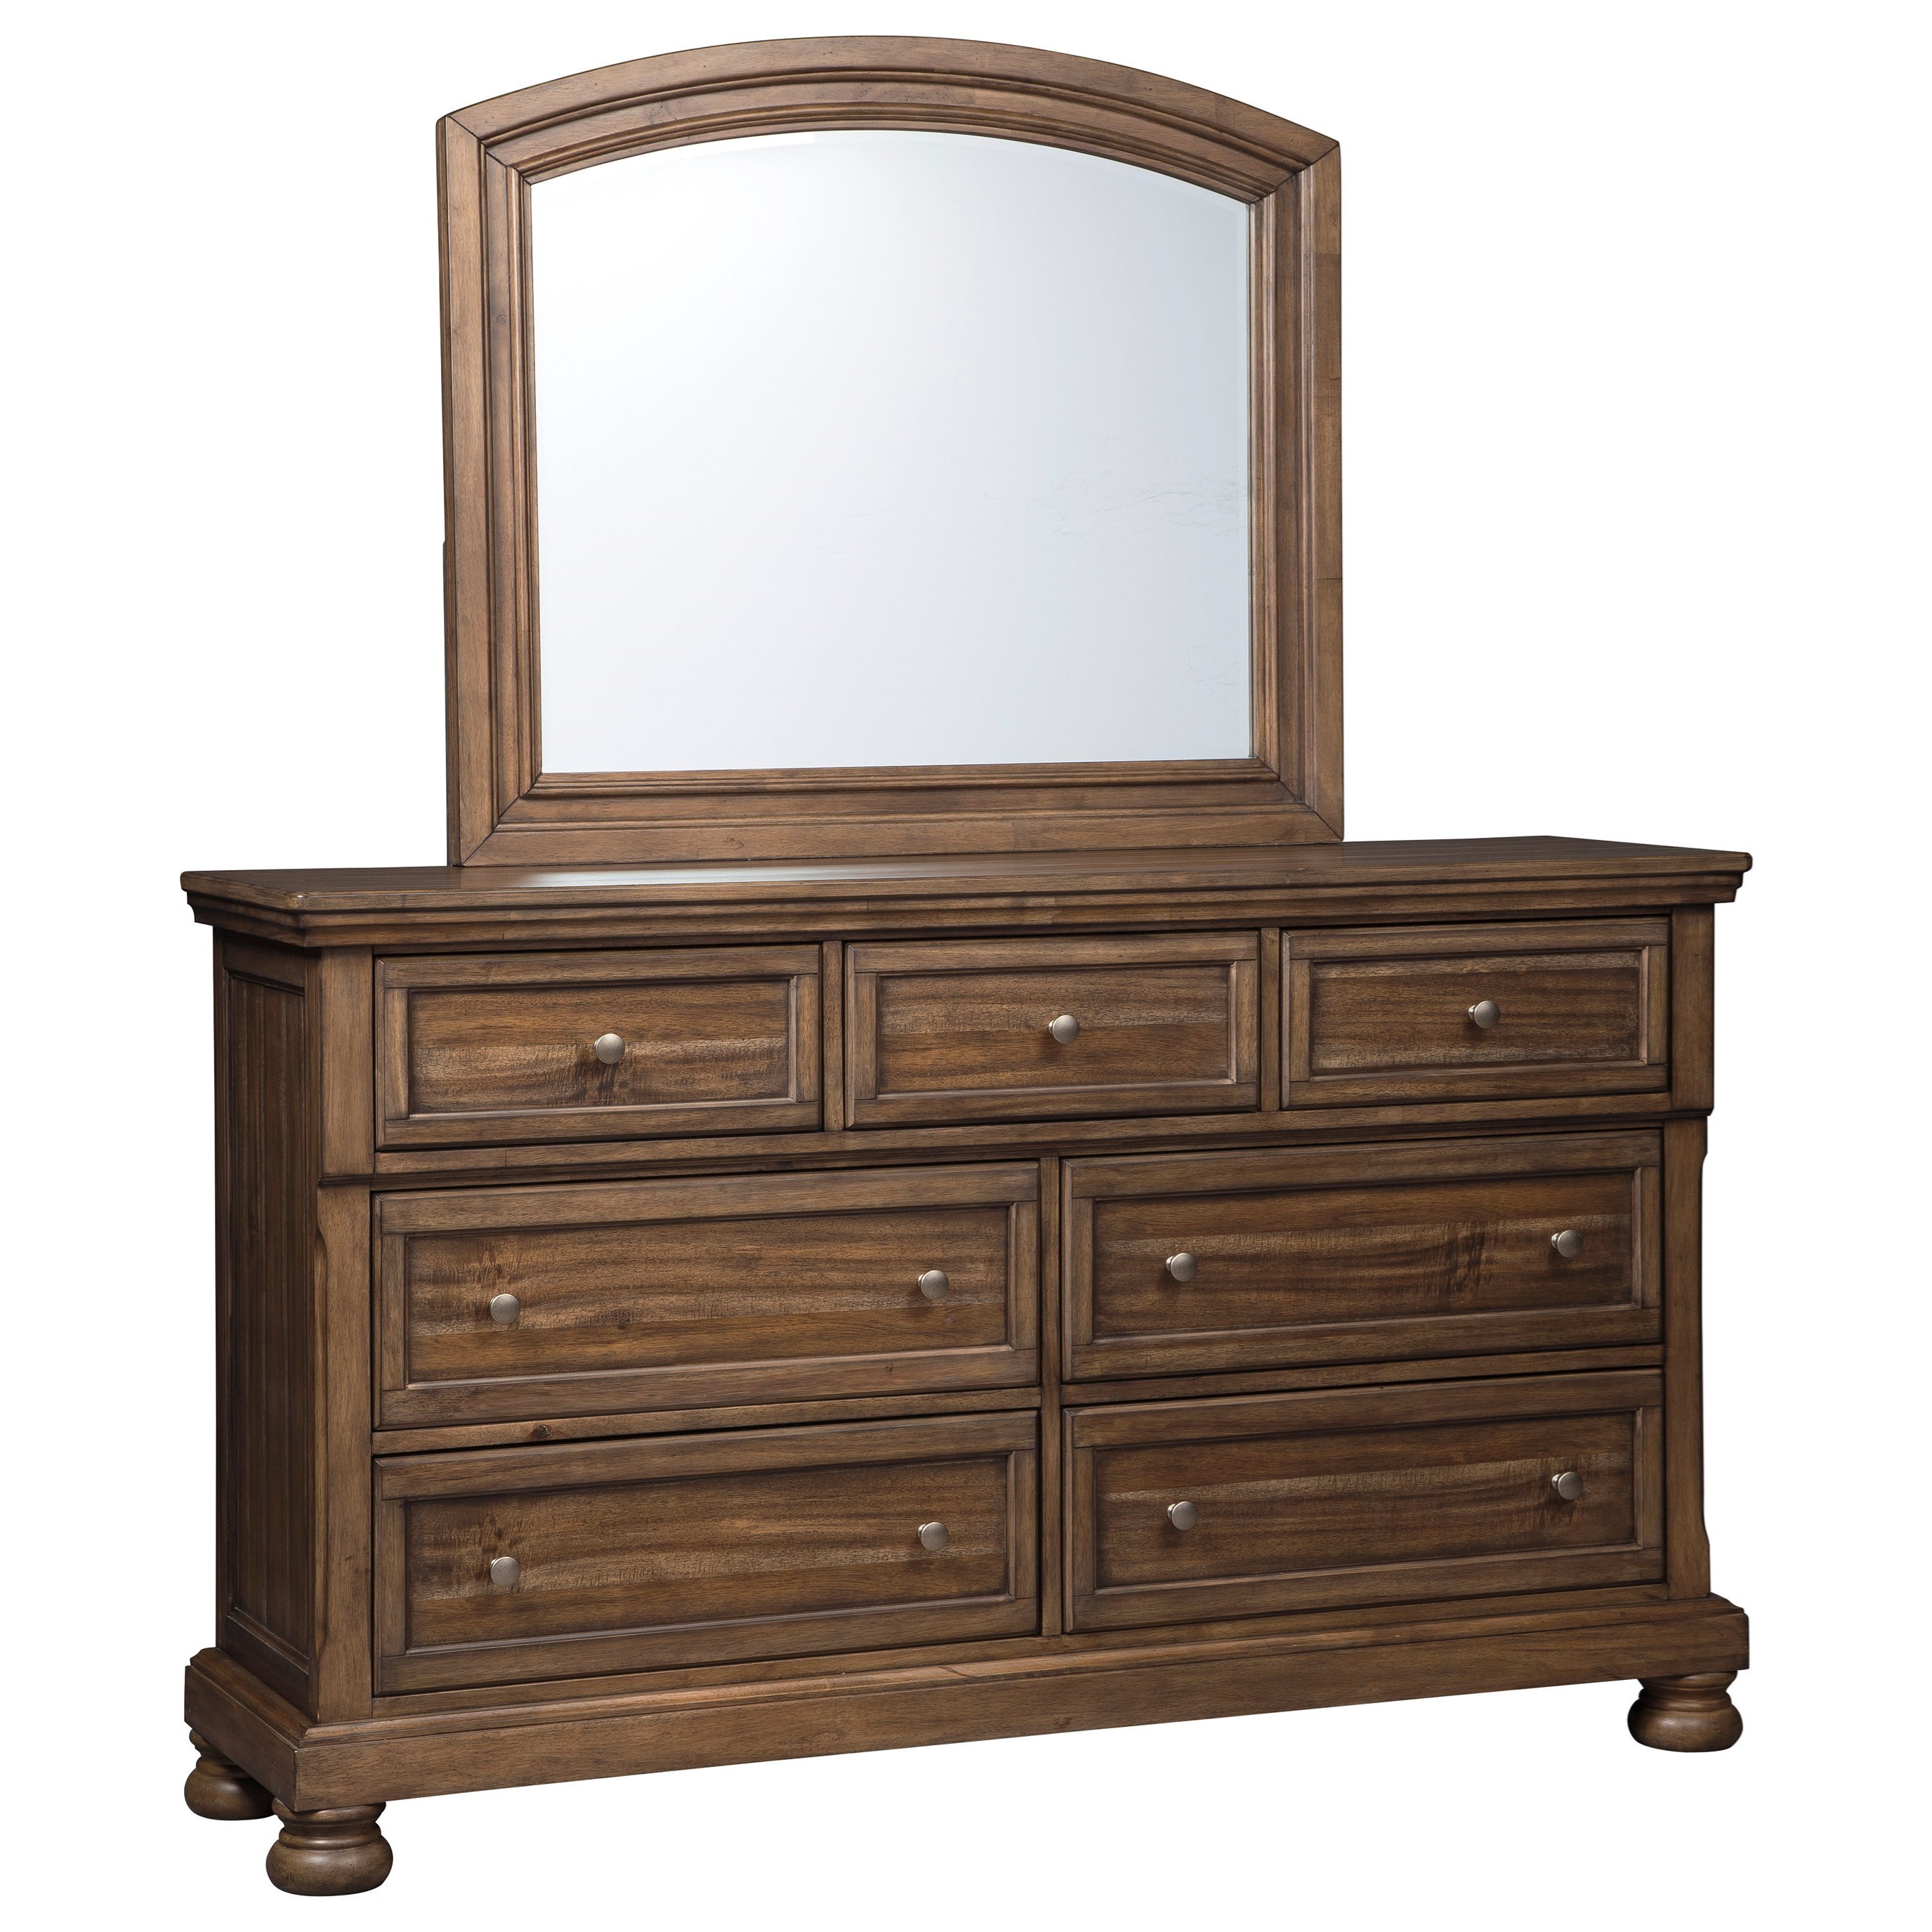 Flynnter Dresser & Bedroom Mirror by Signature Design by Ashley at Northeast Factory Direct